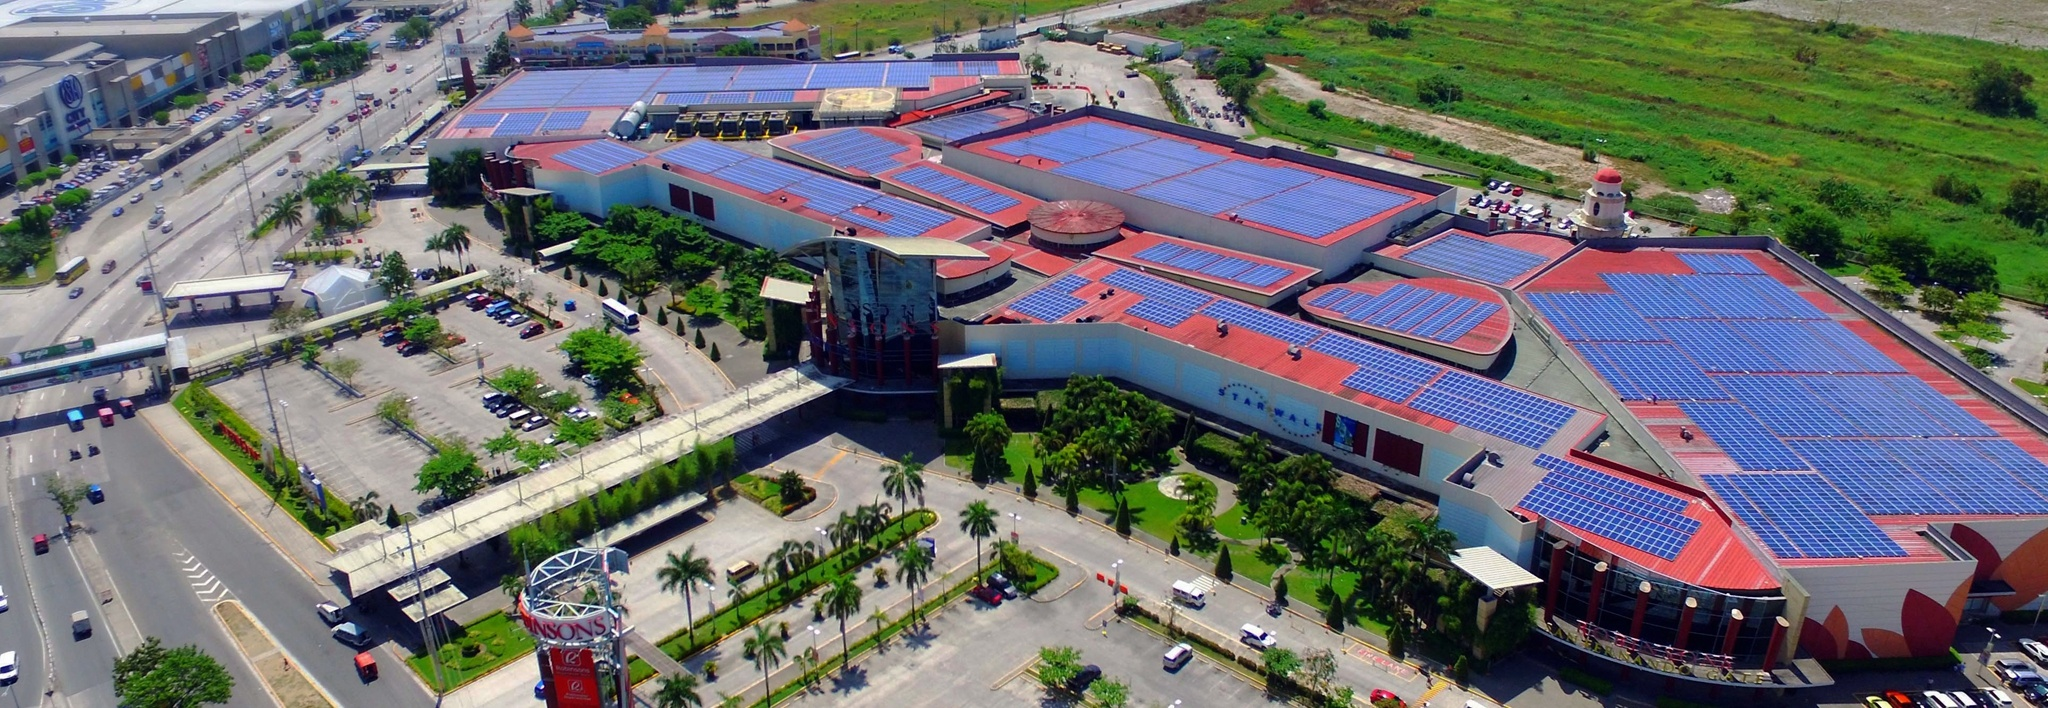 Clenergy Rooftop 2.88 Solar Project in the Philippines